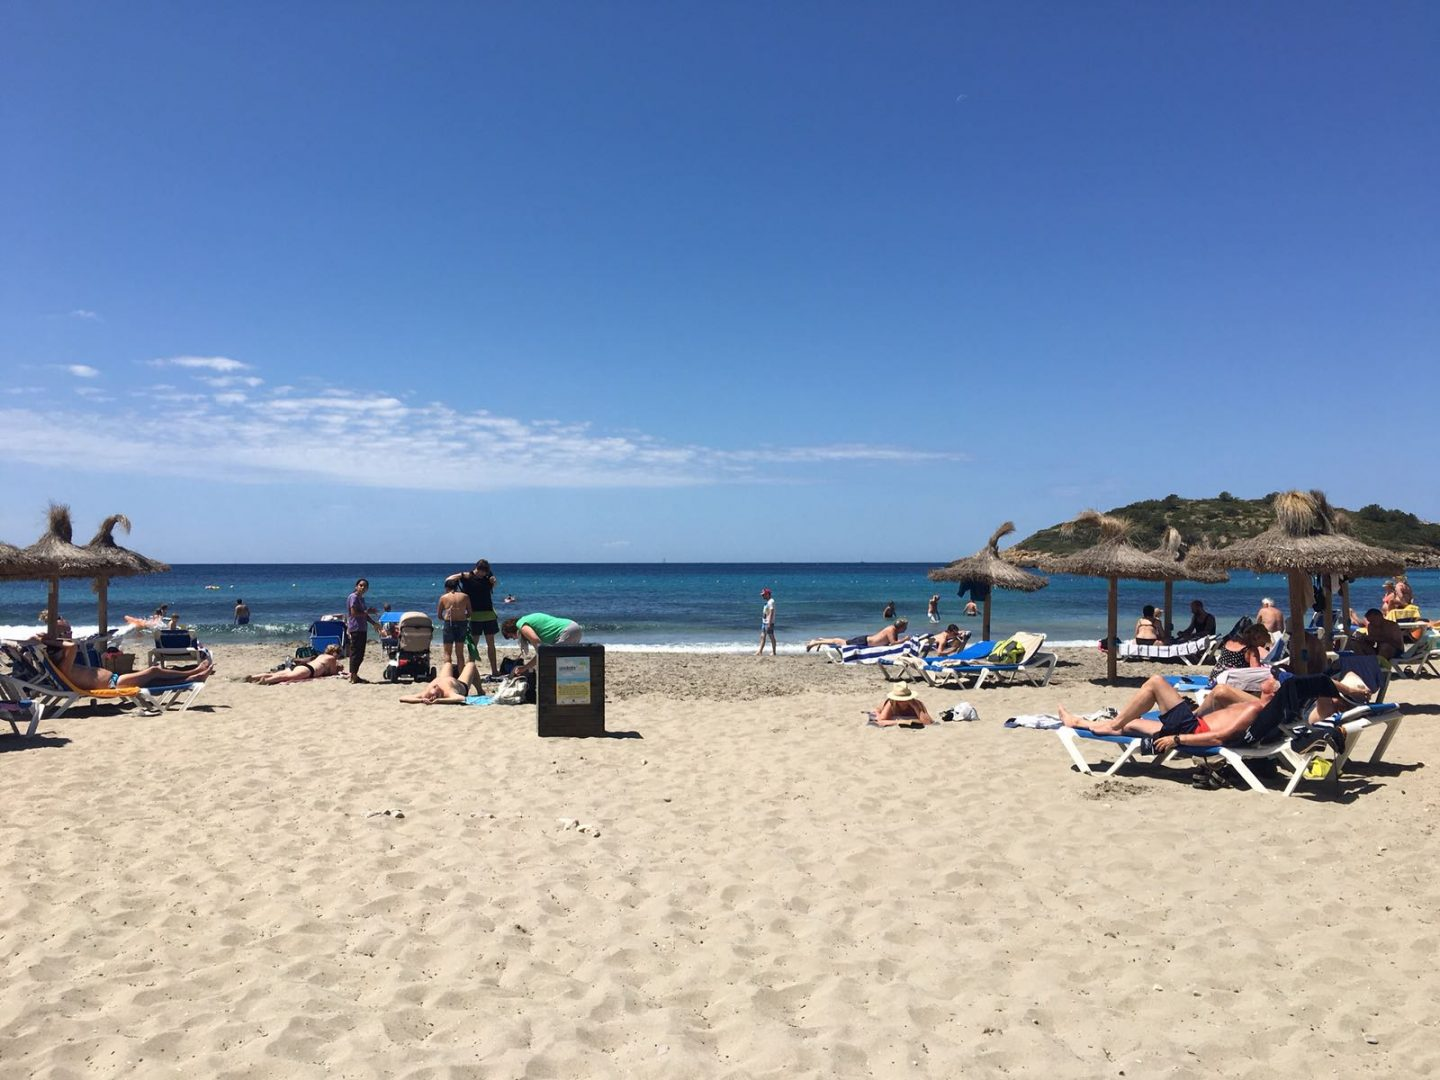 Sant Elm Majorcan beaches